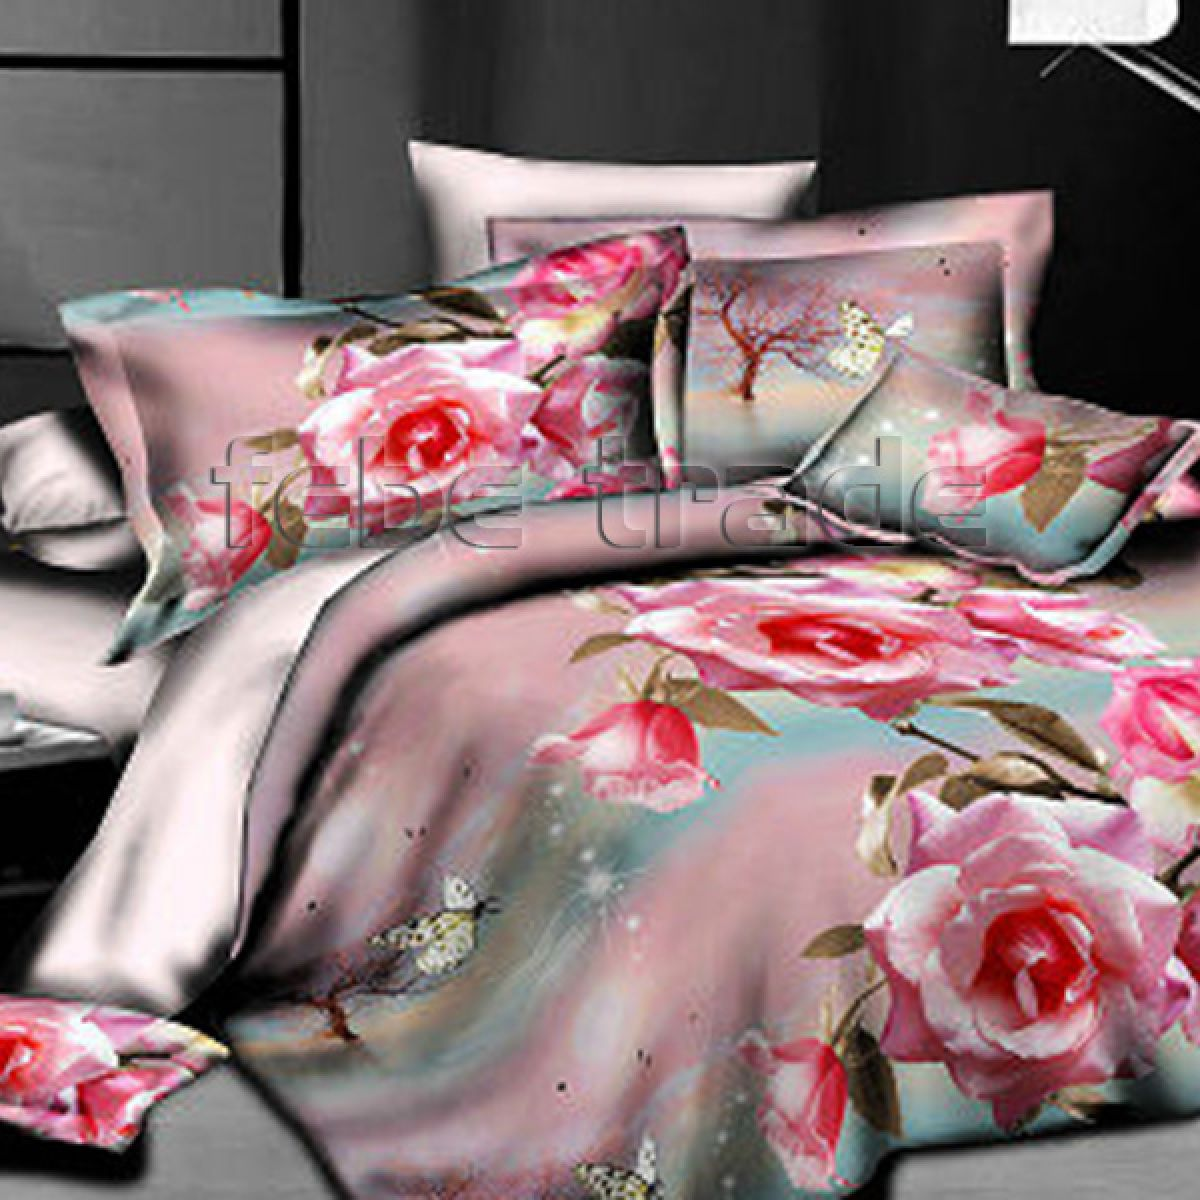 3D Beddings - Cotton World - KSD-290 - 160x200 cm - 4 cz